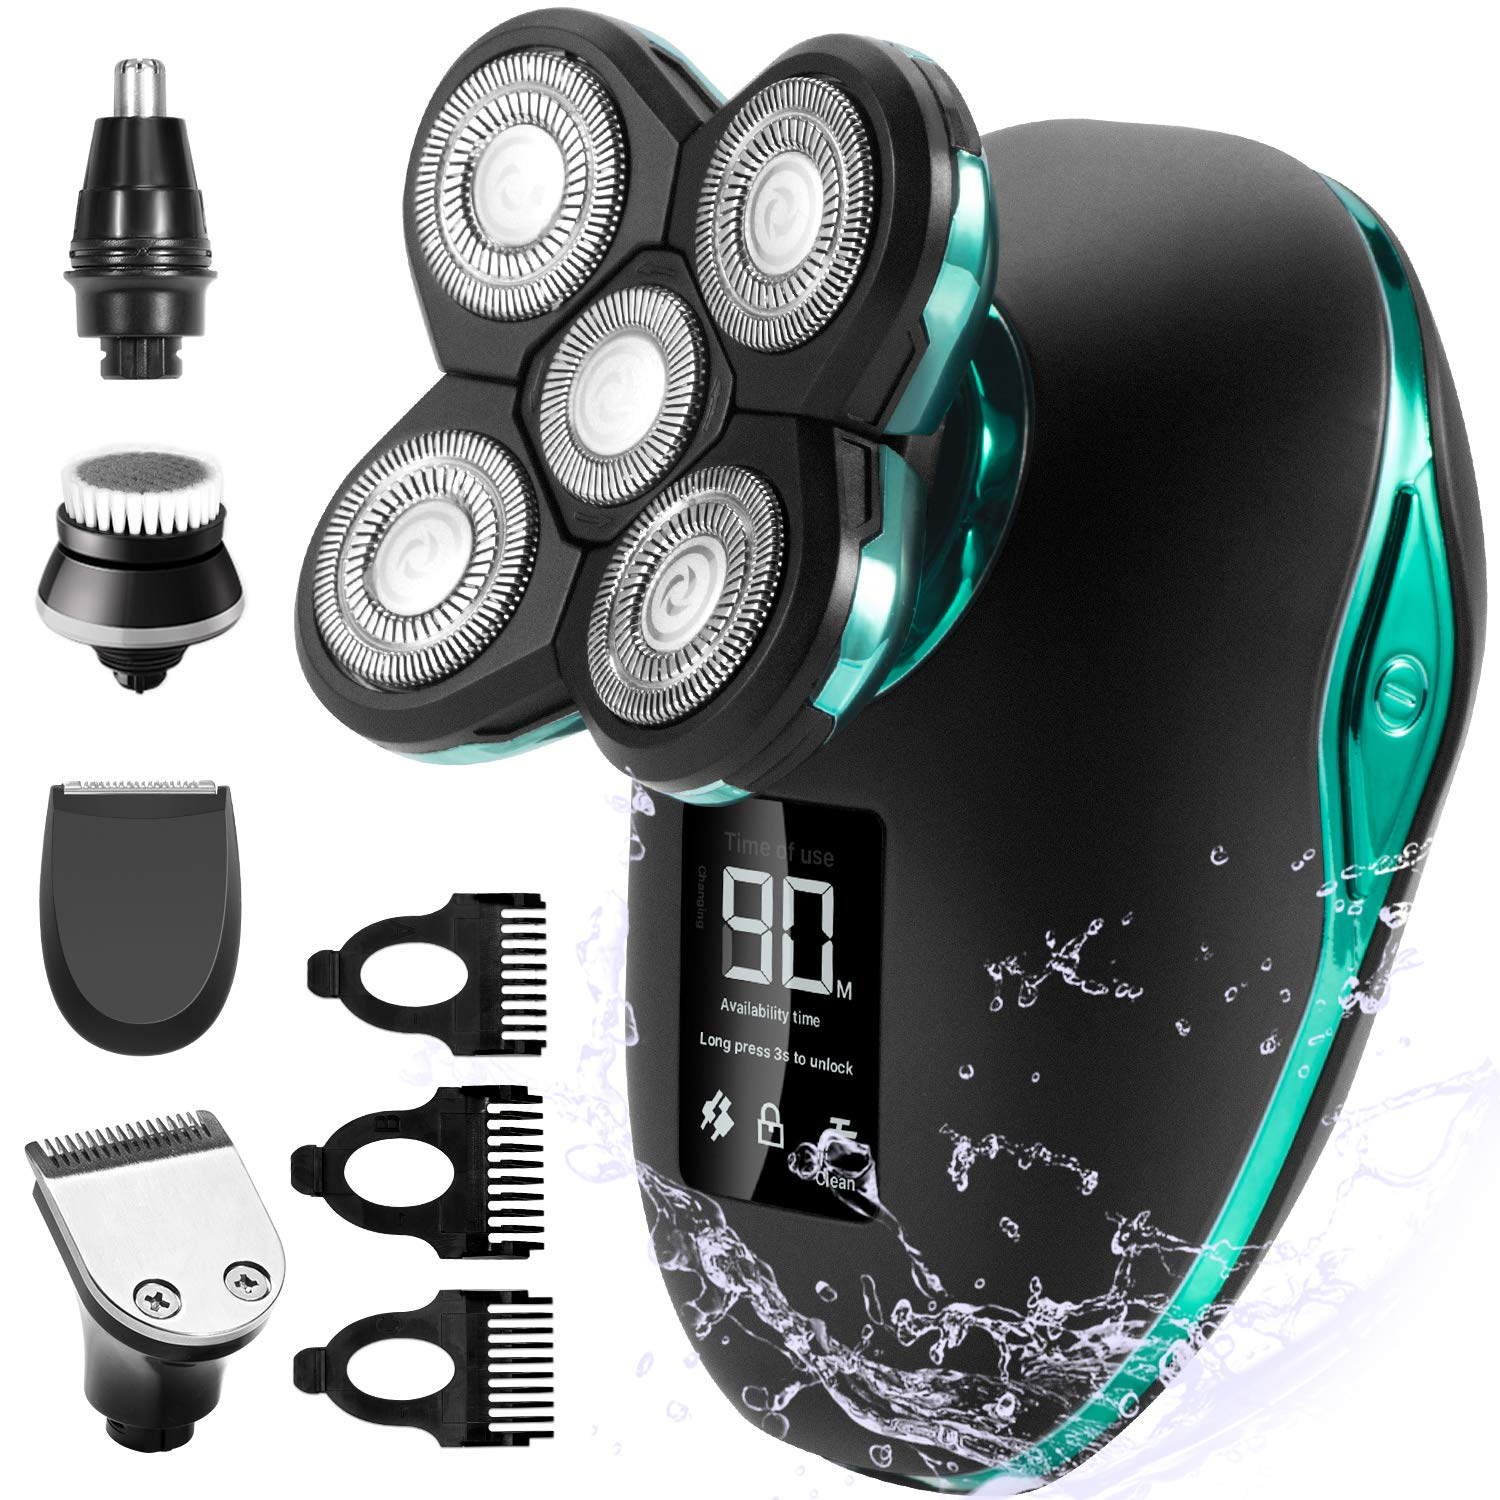 Electric Shaver for Men & Grooming Kit, OriHea 5 in 1 Electric Razor Cordless Waterproof Wet Dry Rotary Bald Head Shaver Nose Trimmer Hair Clippers Facial Cleansing Brush LED Display USB